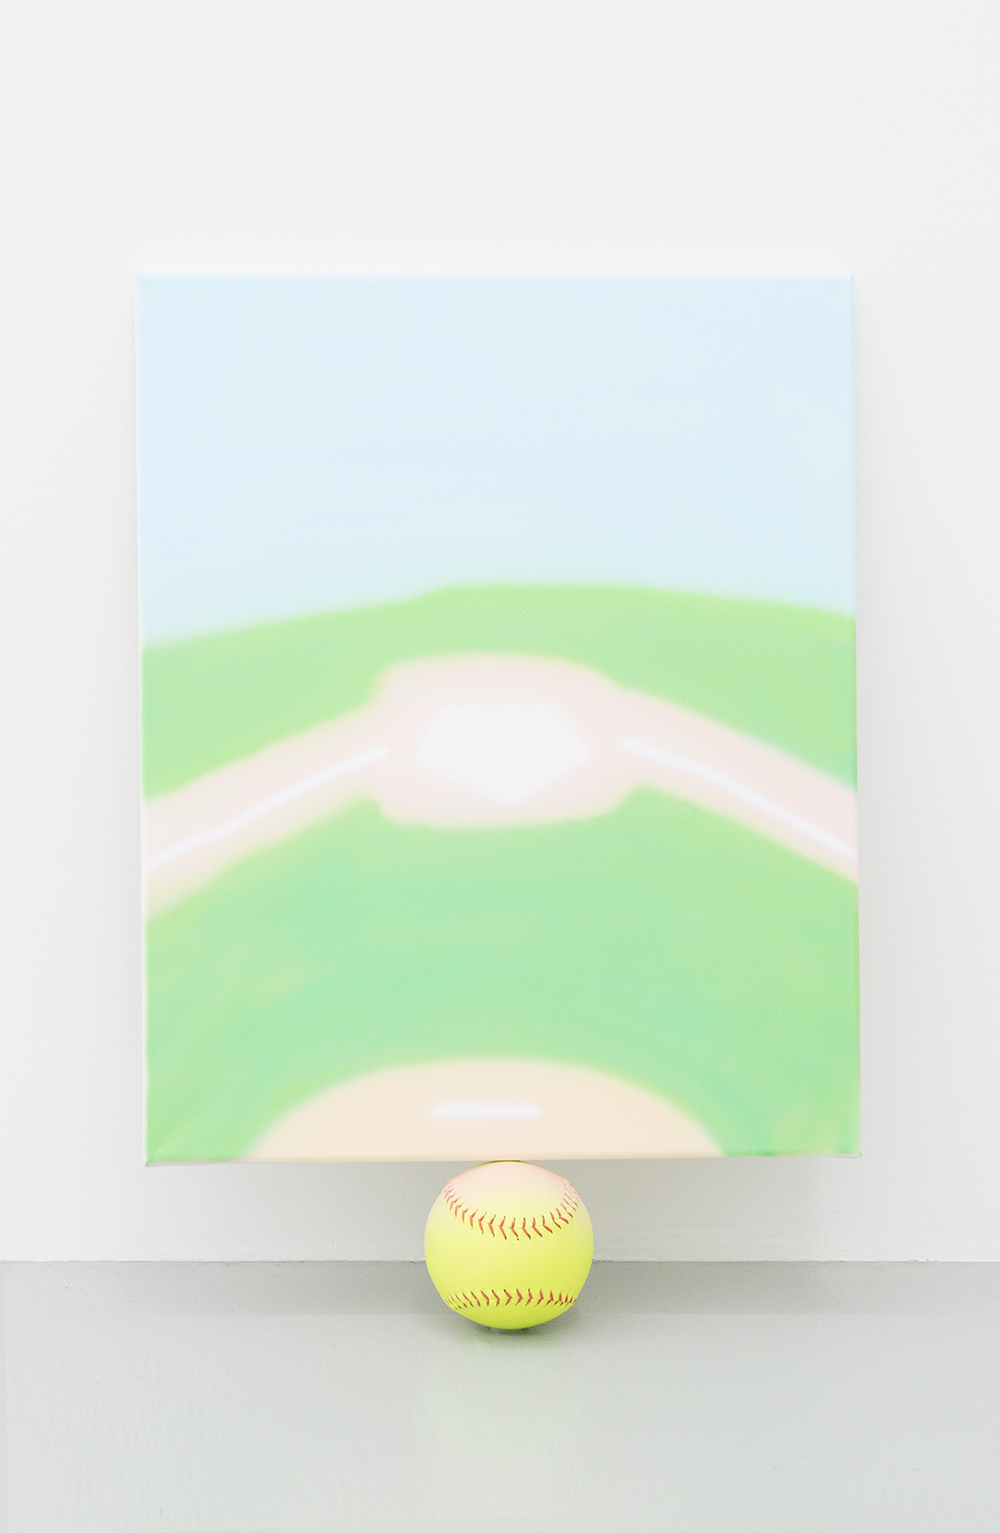 Jonny Paul Gillette goal on softball ball, 2015 Acrylic polymer on canvas, softball ball